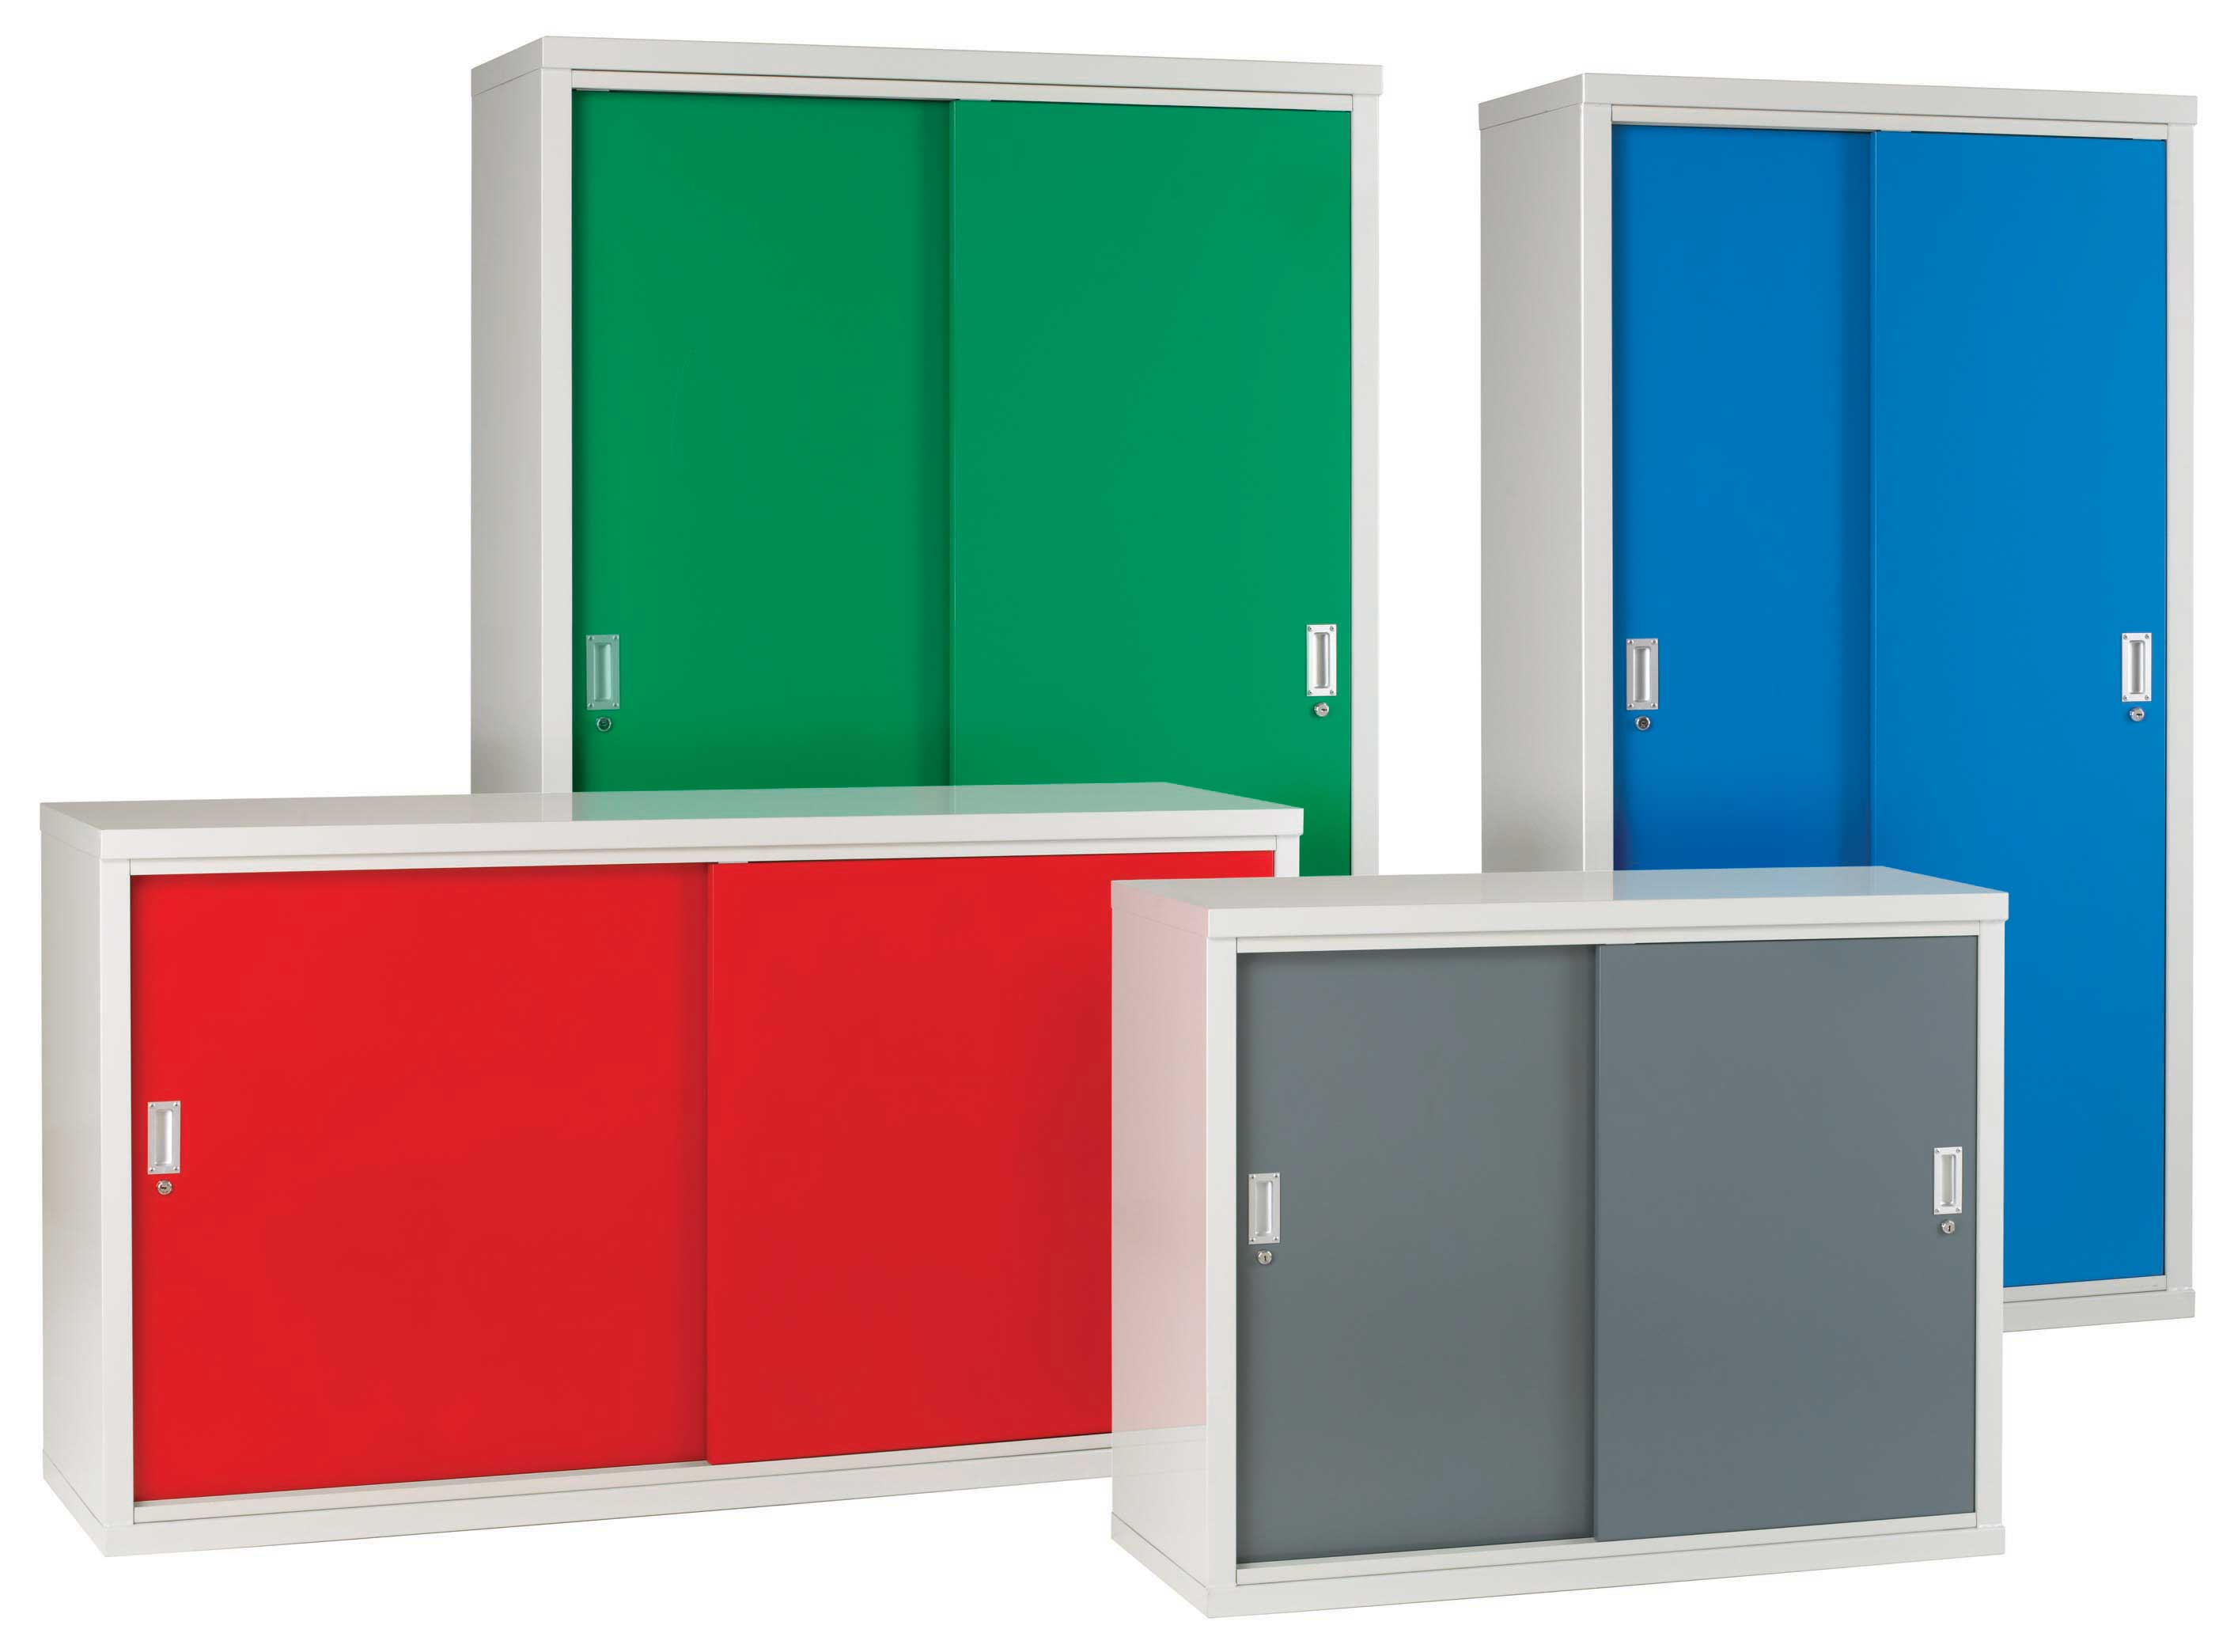 Steel Cabinets With Sliding Doors